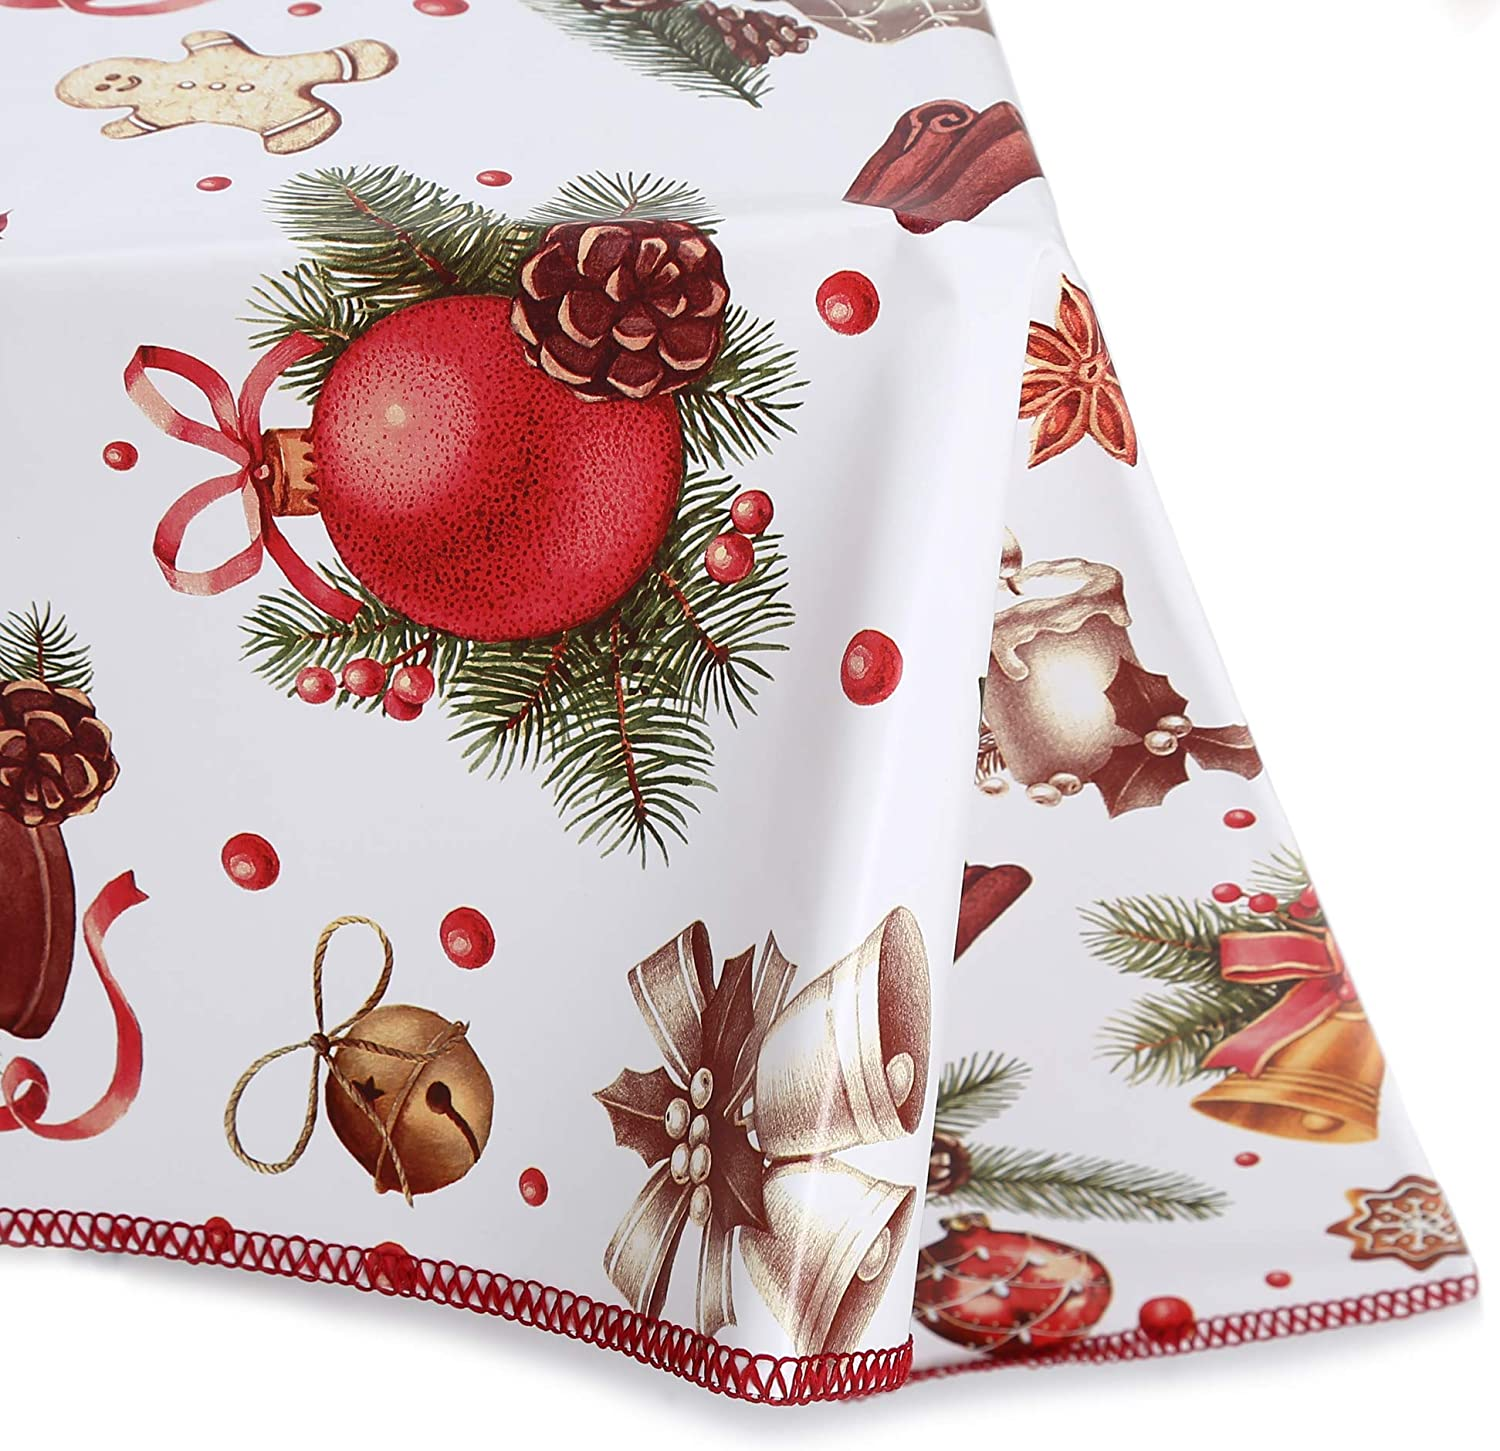 Decoser Heavy Duty Flannel Backed Vinyl Tablecloth with Flannel Backing Easy to Wipe-Clean Oilcloth Waterproof Plastic Rectangle 55x55 inch Table Cover for Christmas Birthday Party